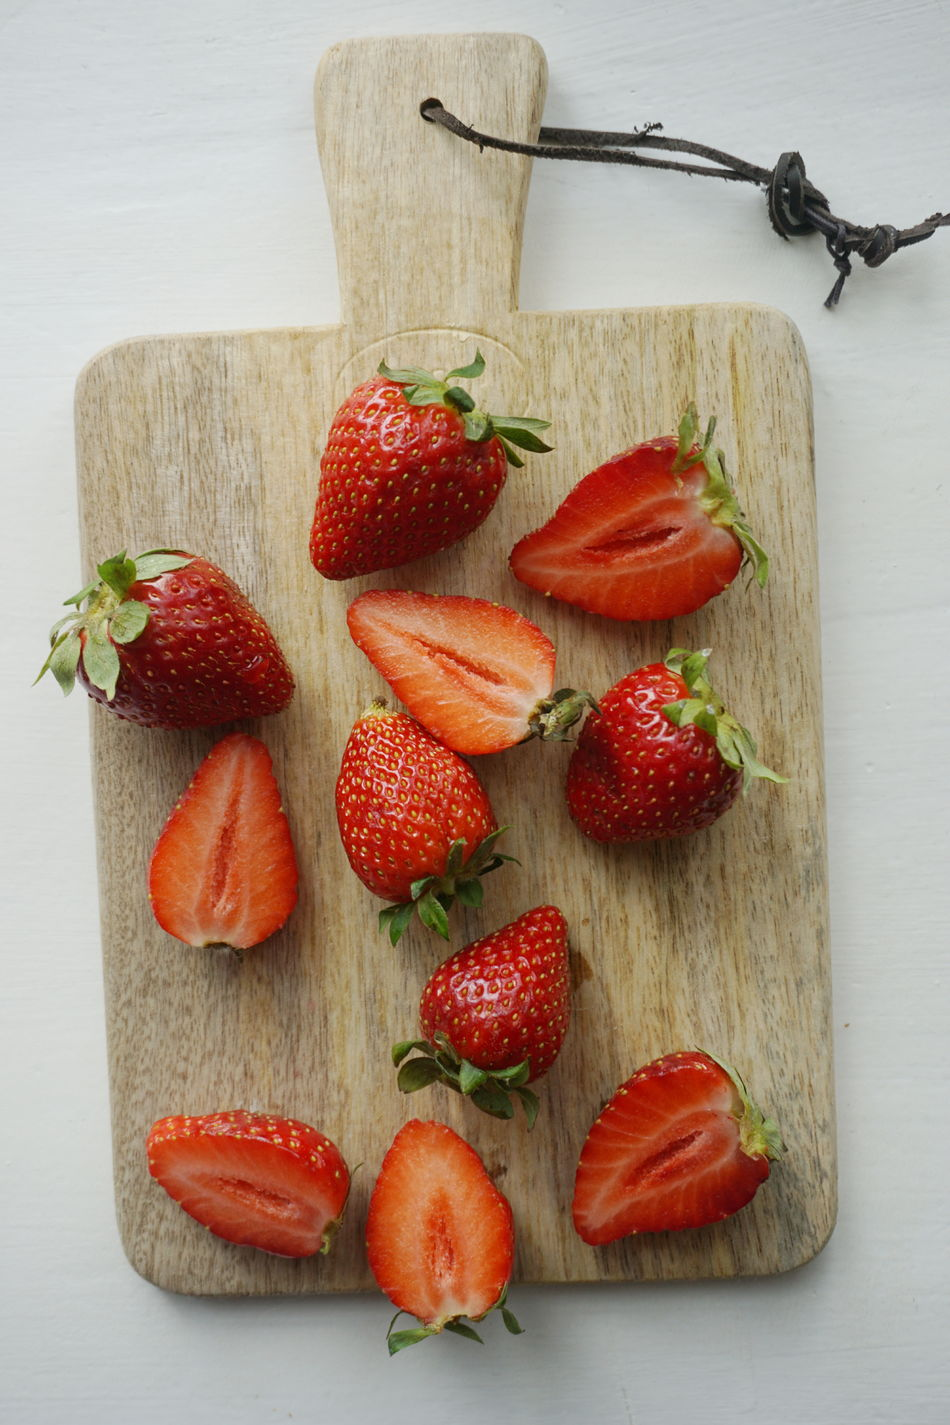 Strawberries on wooden board Berries Berries Collection Berry Berry Fruit Board Close-up Food Food And Drink Freshness Fruit Healthy Eating Healthy Food Healthy Lifestyle Indoors  No People Ready-to-eat Red Rustic Strawberry Street Photography Studio Shot Sweet Food Wood - Material Wood Boards Wooden